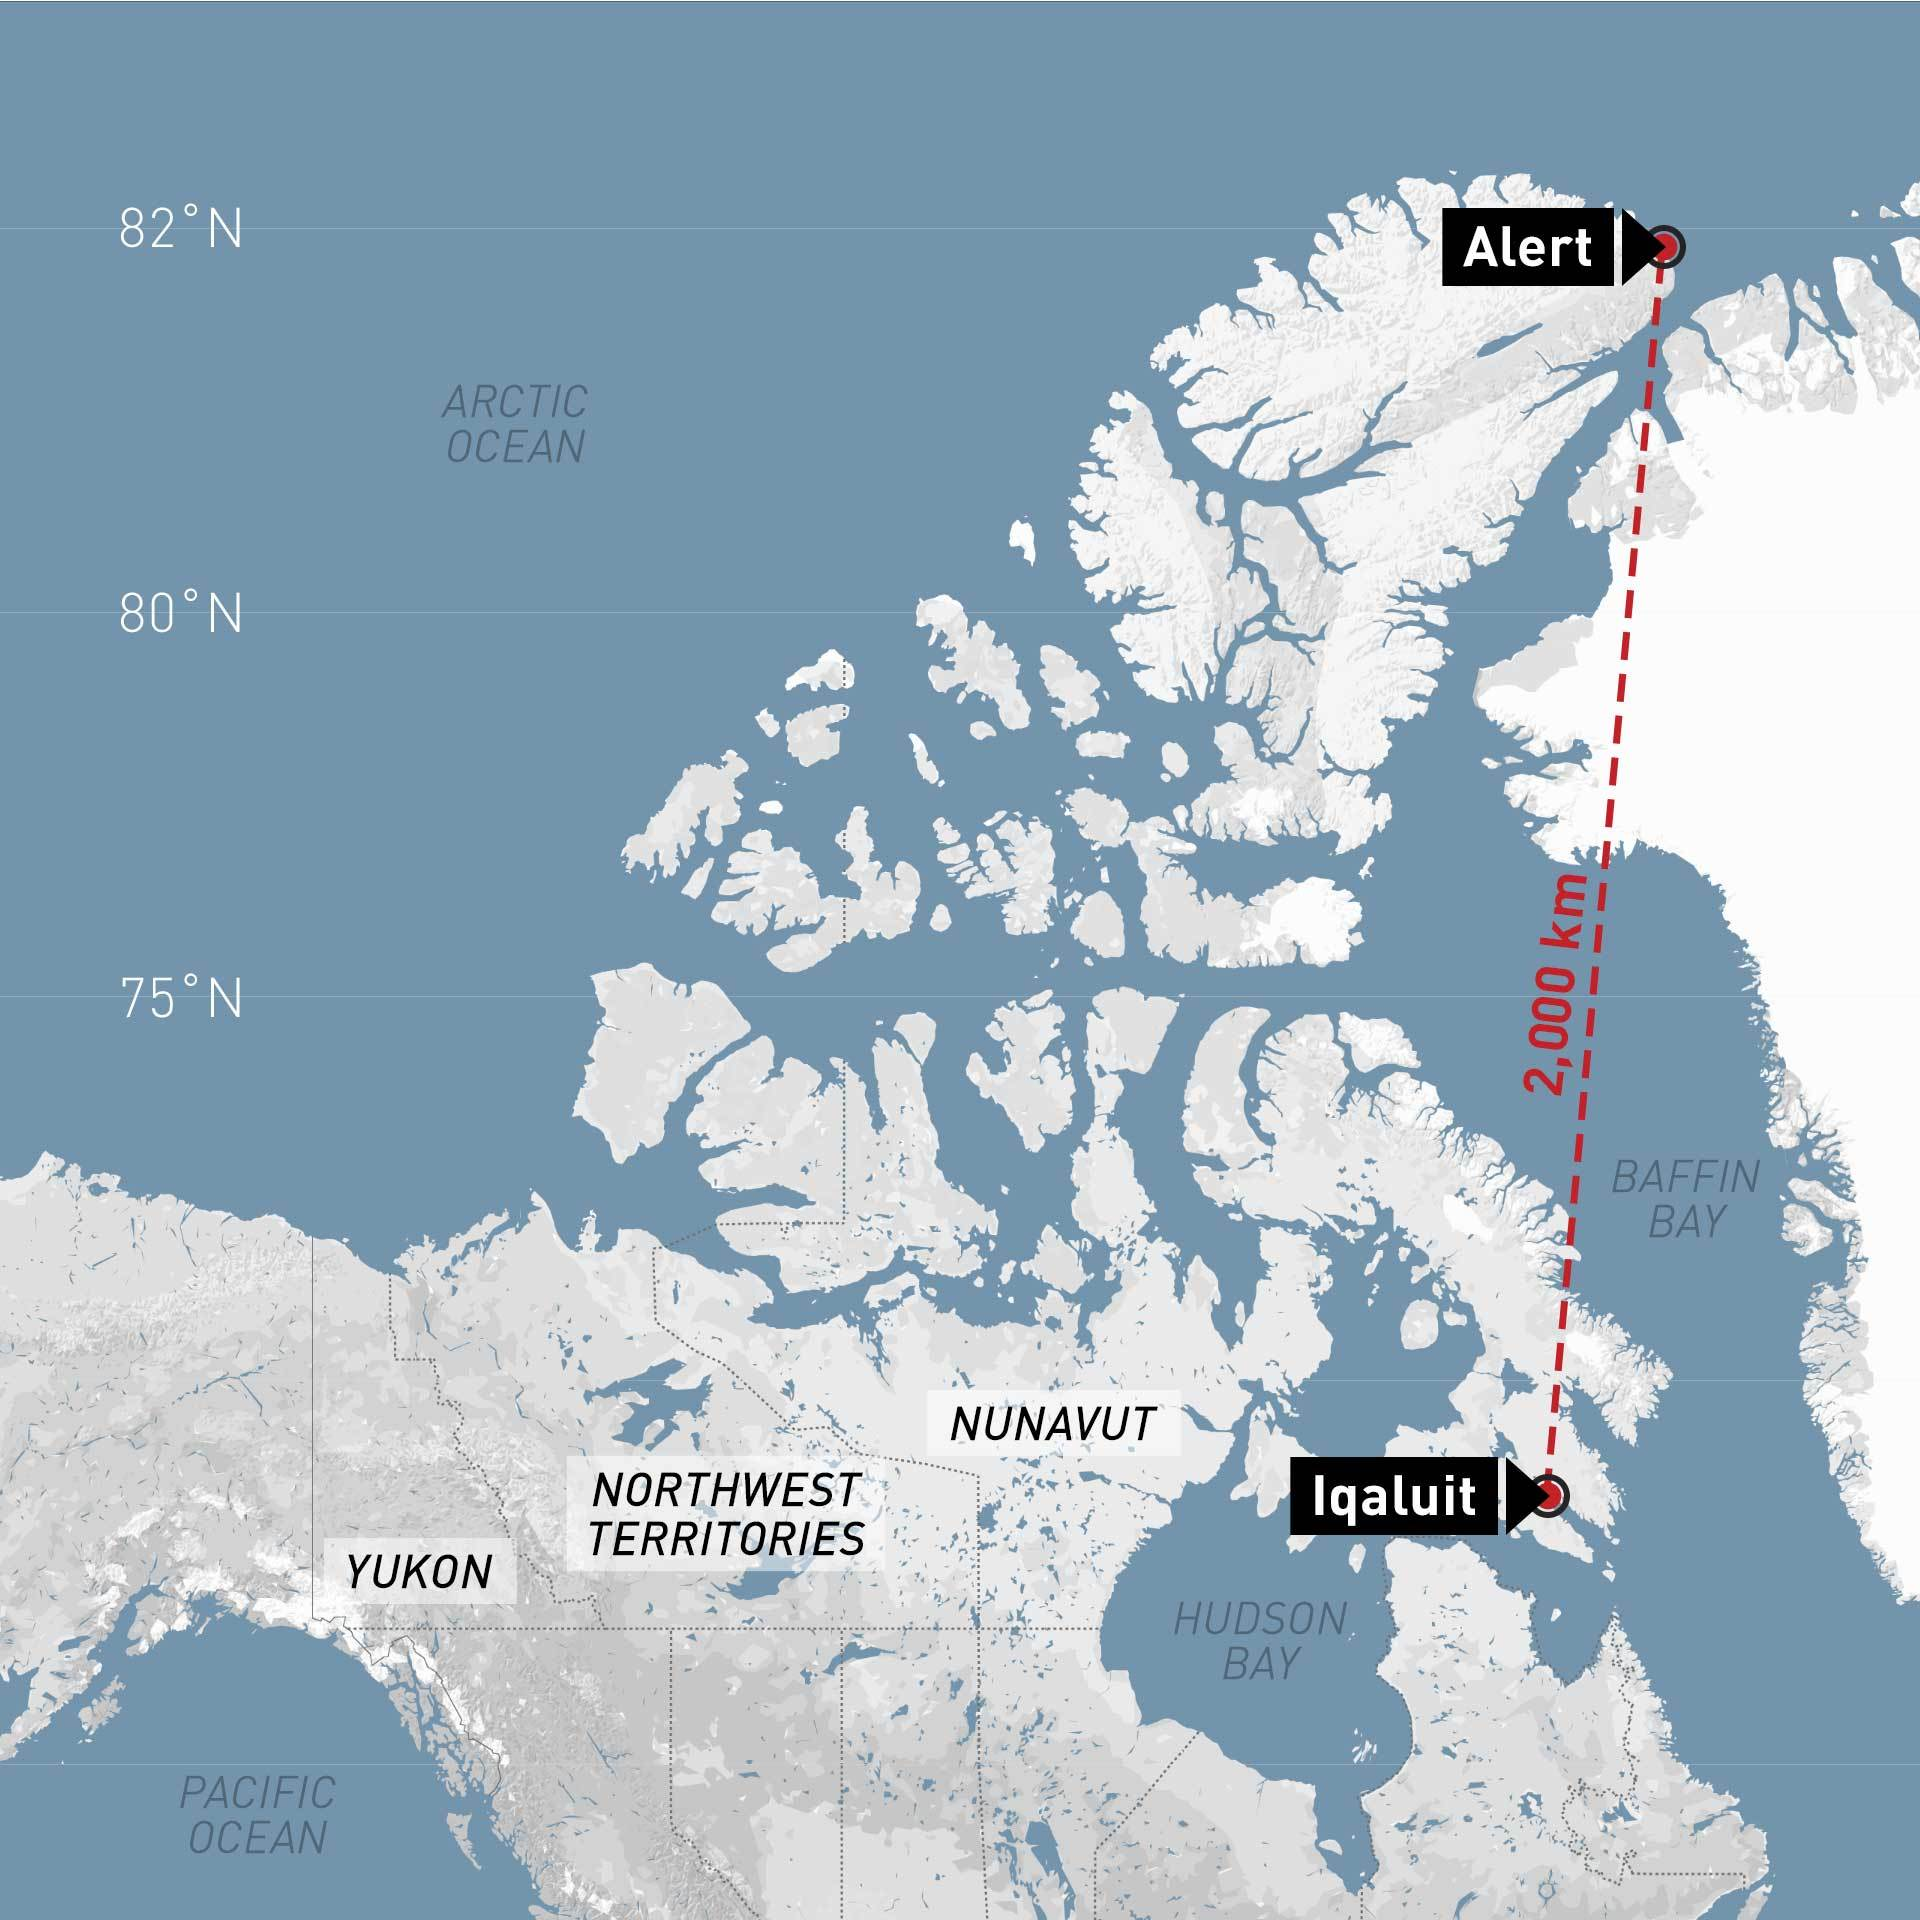 CFS Alert, the northernmost military outpost in Canada, is 2,000 kilometres from Iqaluit, the capital of Nunavut.